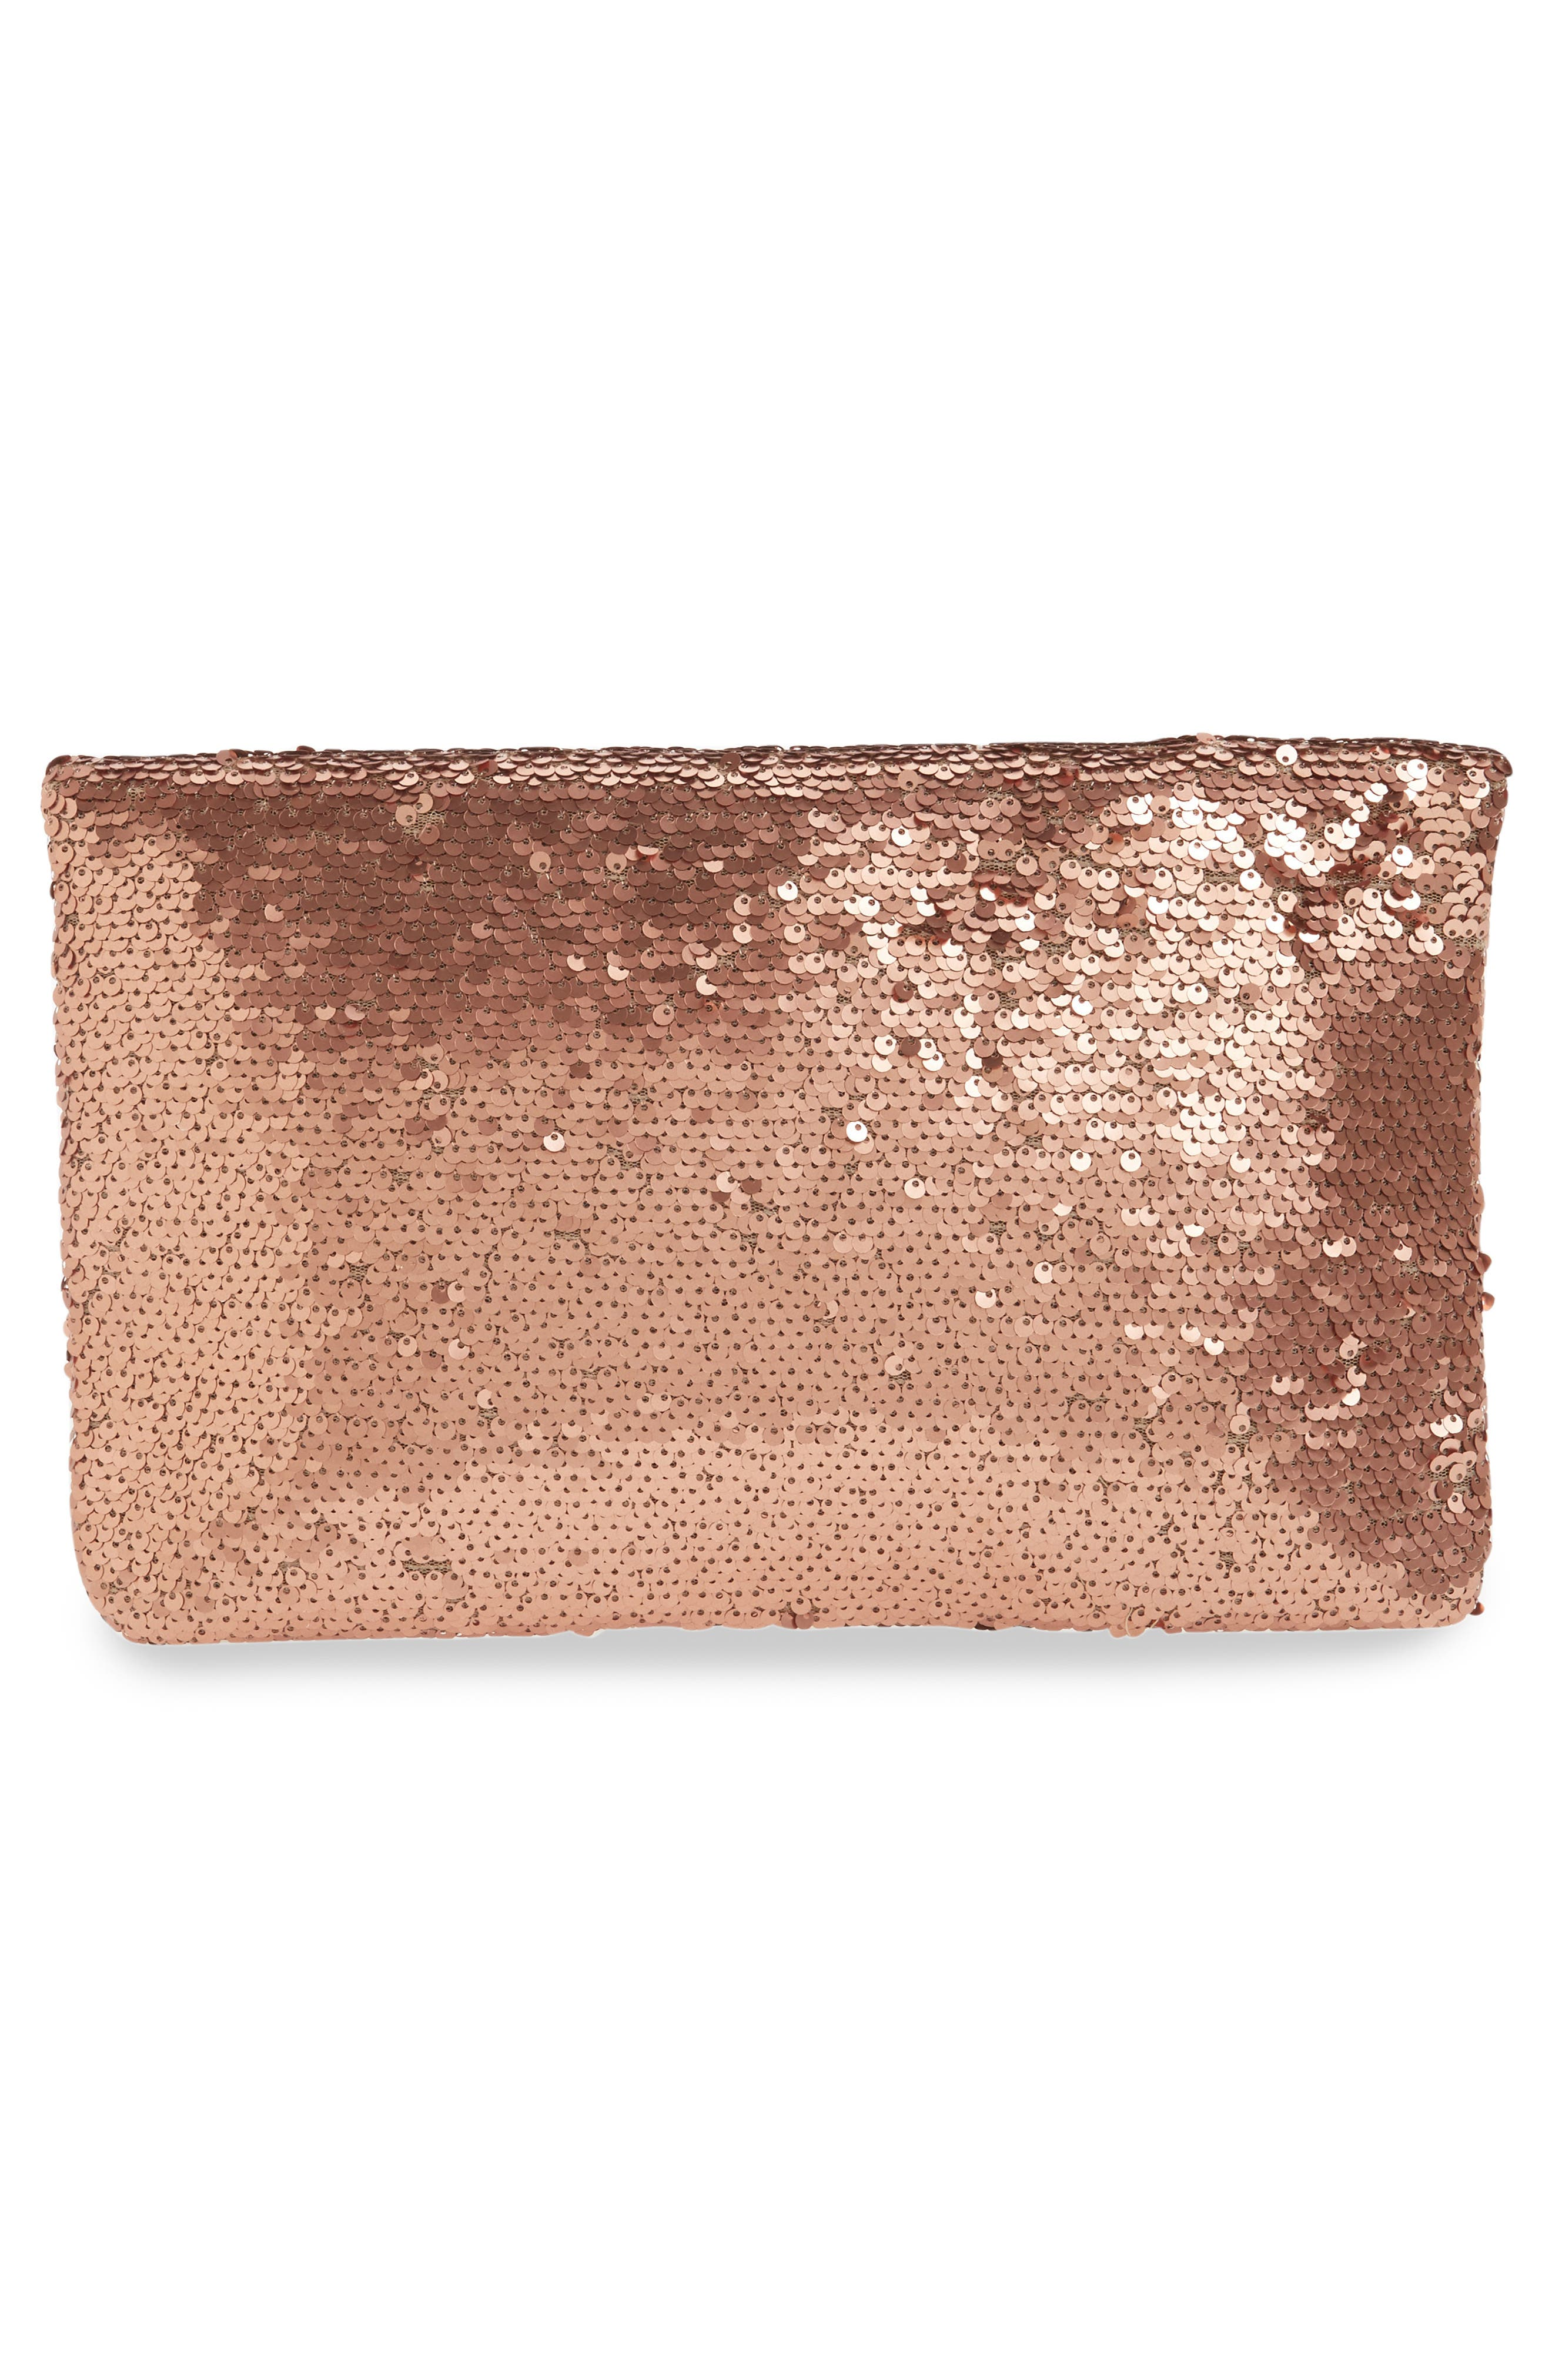 Sequin Foldover Clutch,                             Alternate thumbnail 3, color,                             200